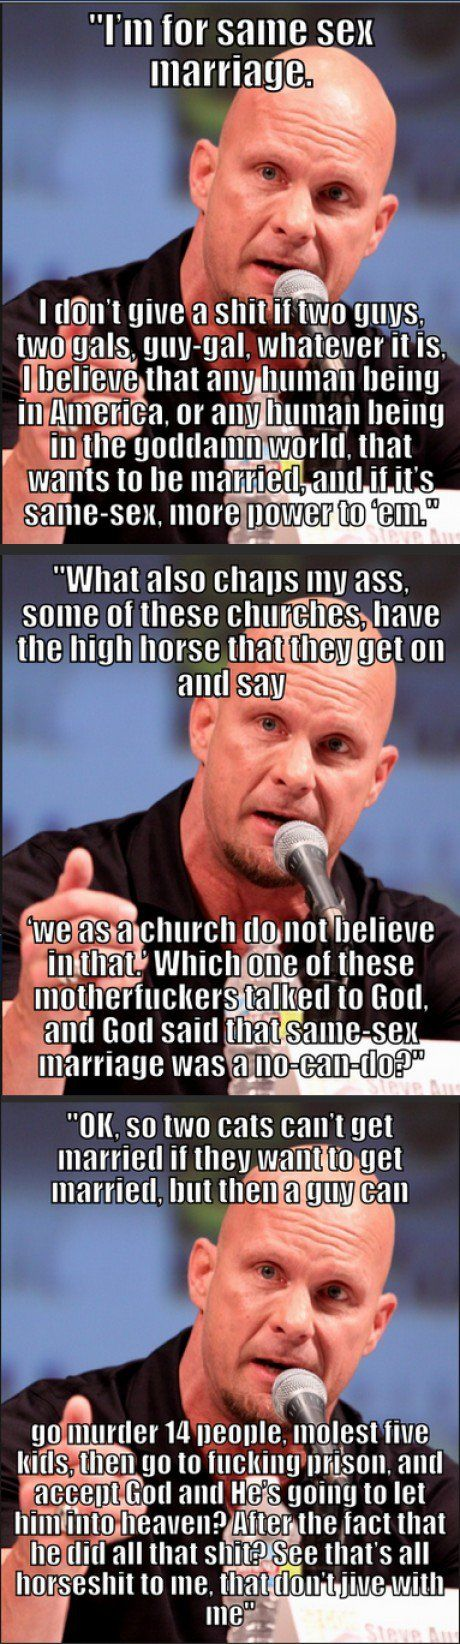 Boom. And that's the bottom line because stone cold said so!